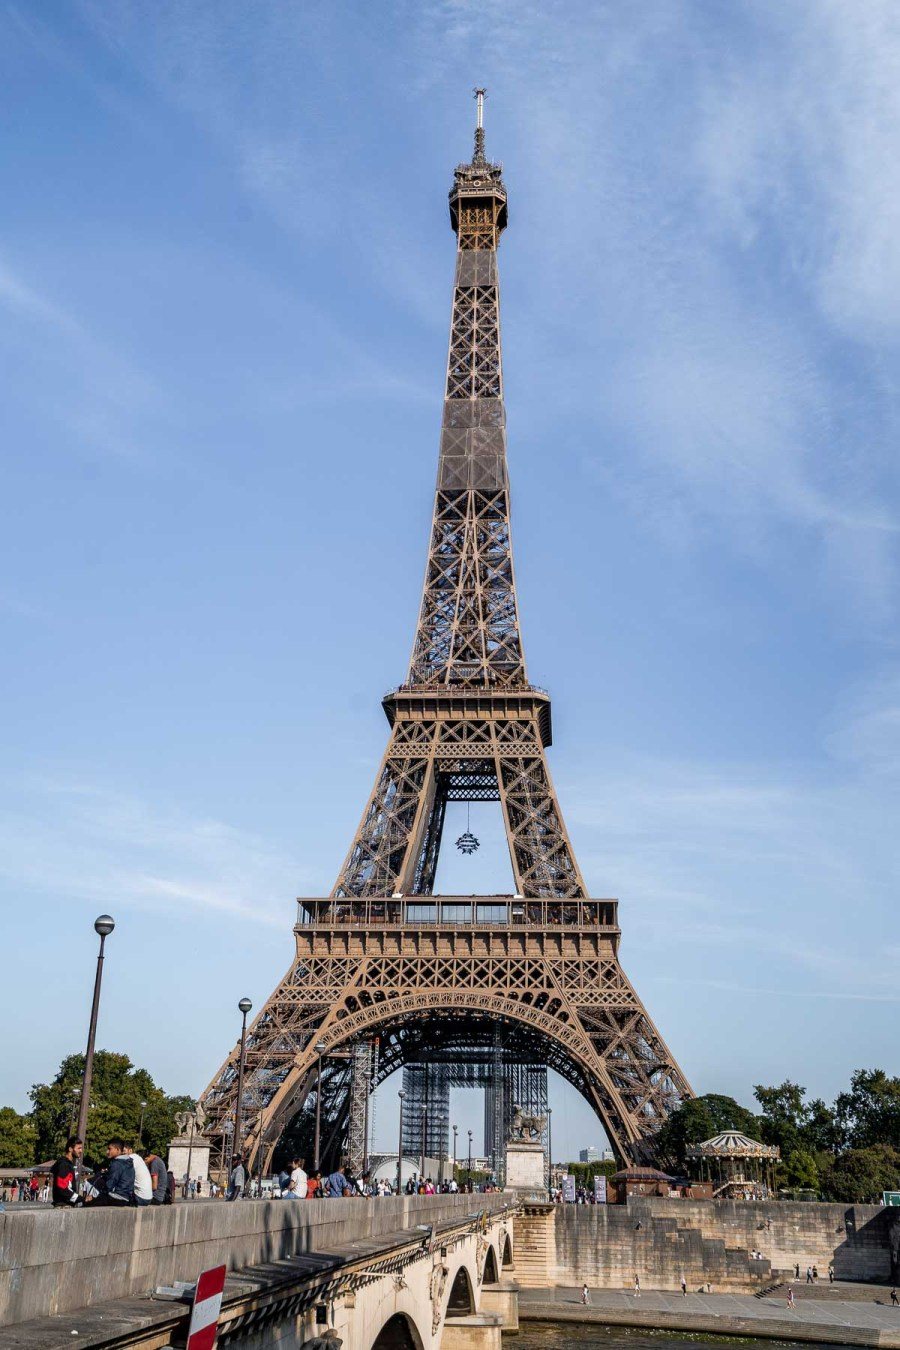 View of the Eiffel Tower from Pont d'Léna